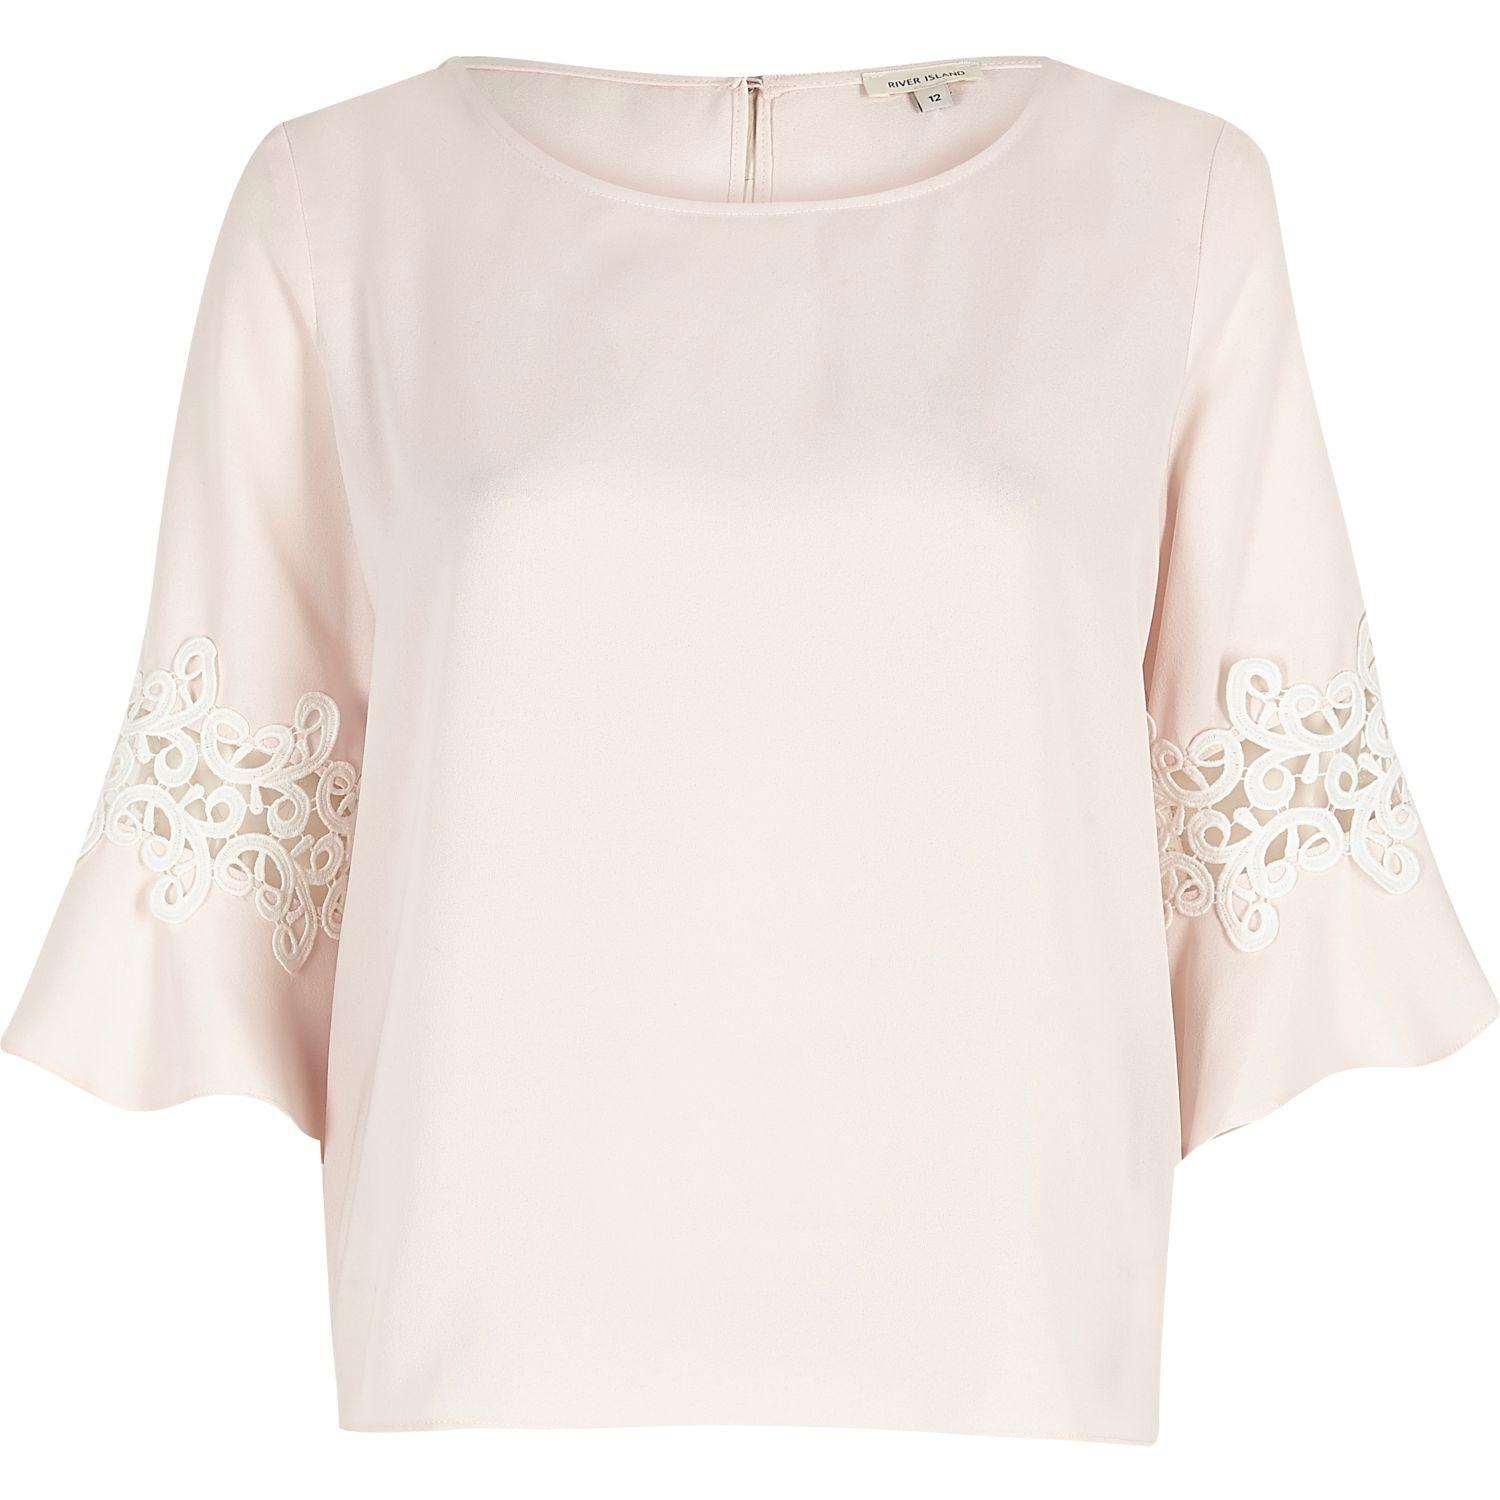 91ef331b38c River Island Light Pink Lace Trim Bell Sleeve Top in Pink - Lyst